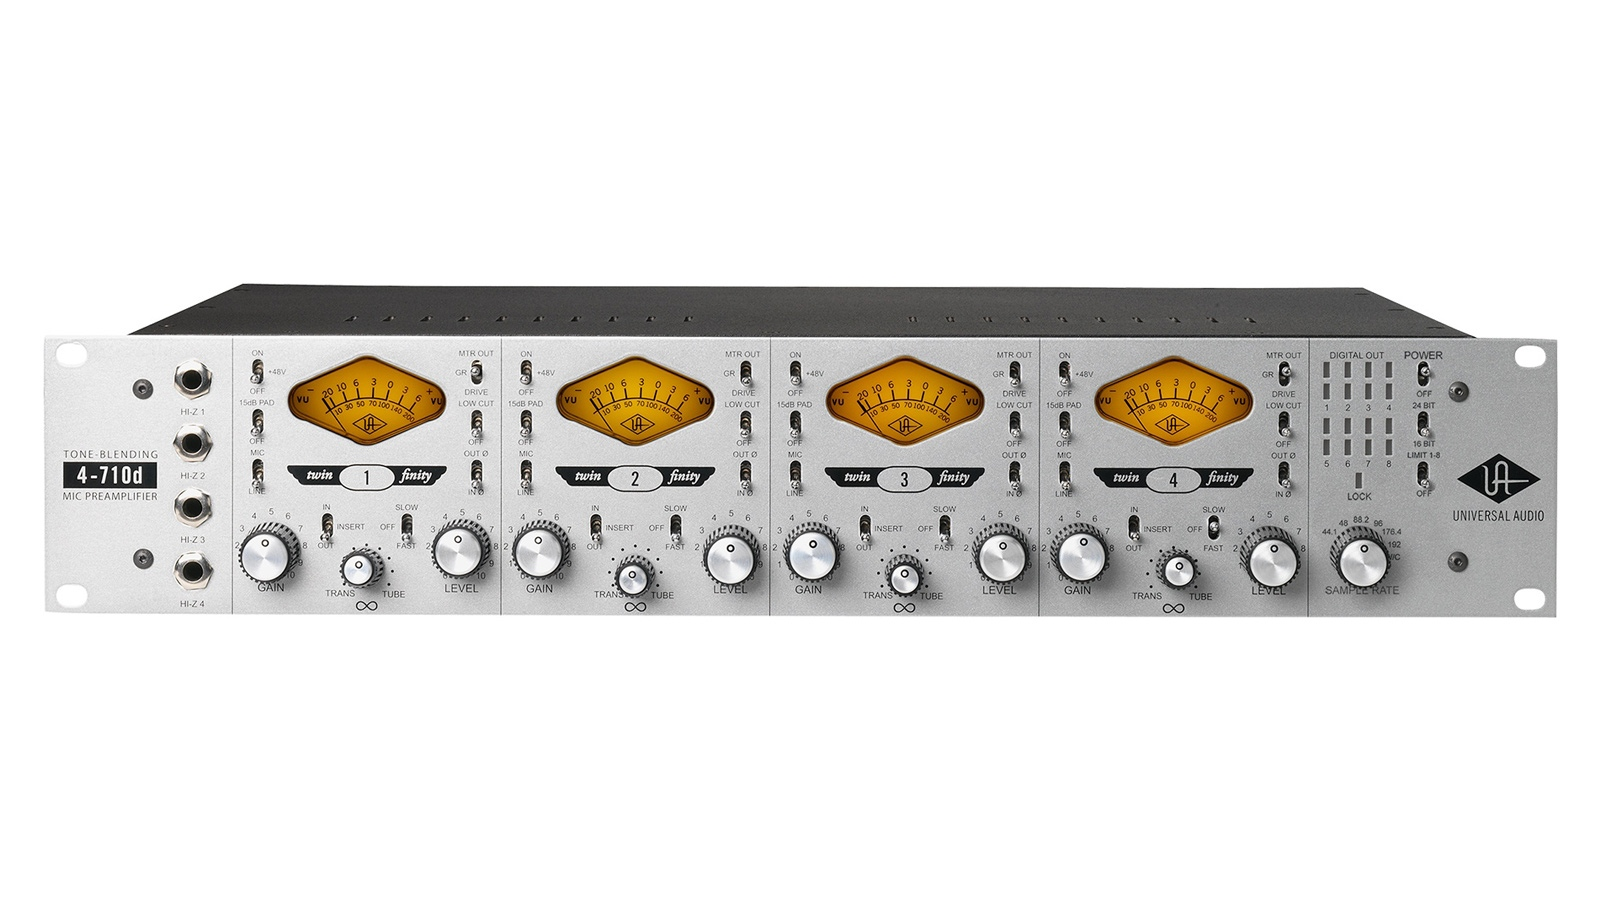 UNIVERSAL AUDIO4-710d Four-Channel Tone-Blending Mic Preamp w/ Dynamics【マイクプリ】【送料無料】